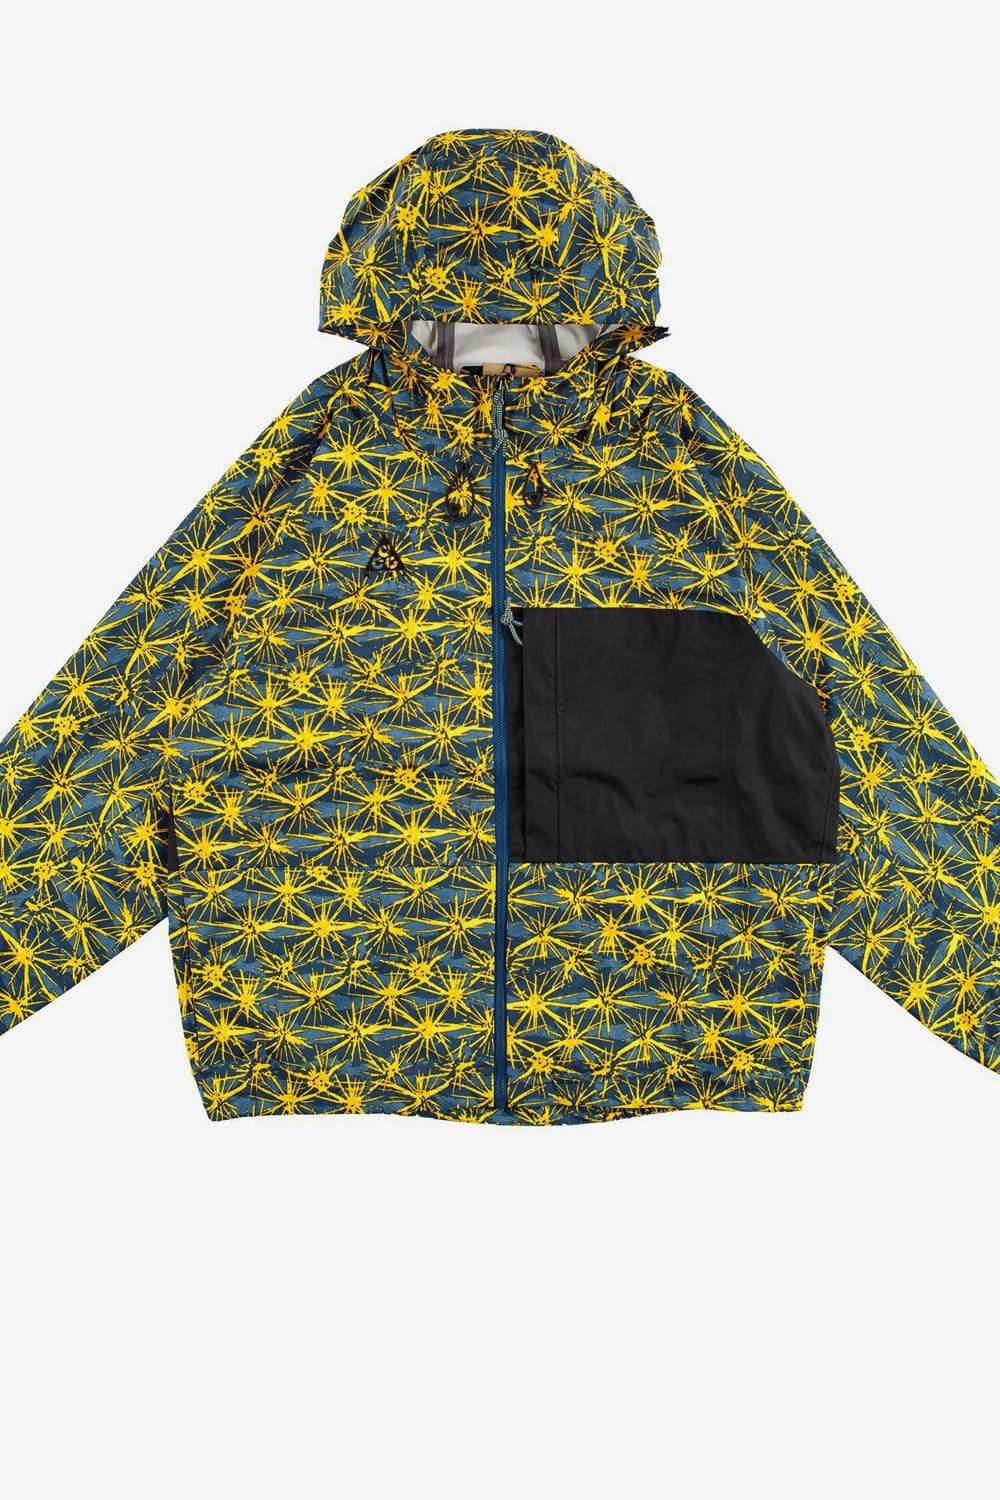 Nike Apparel ACG Packable Jacket